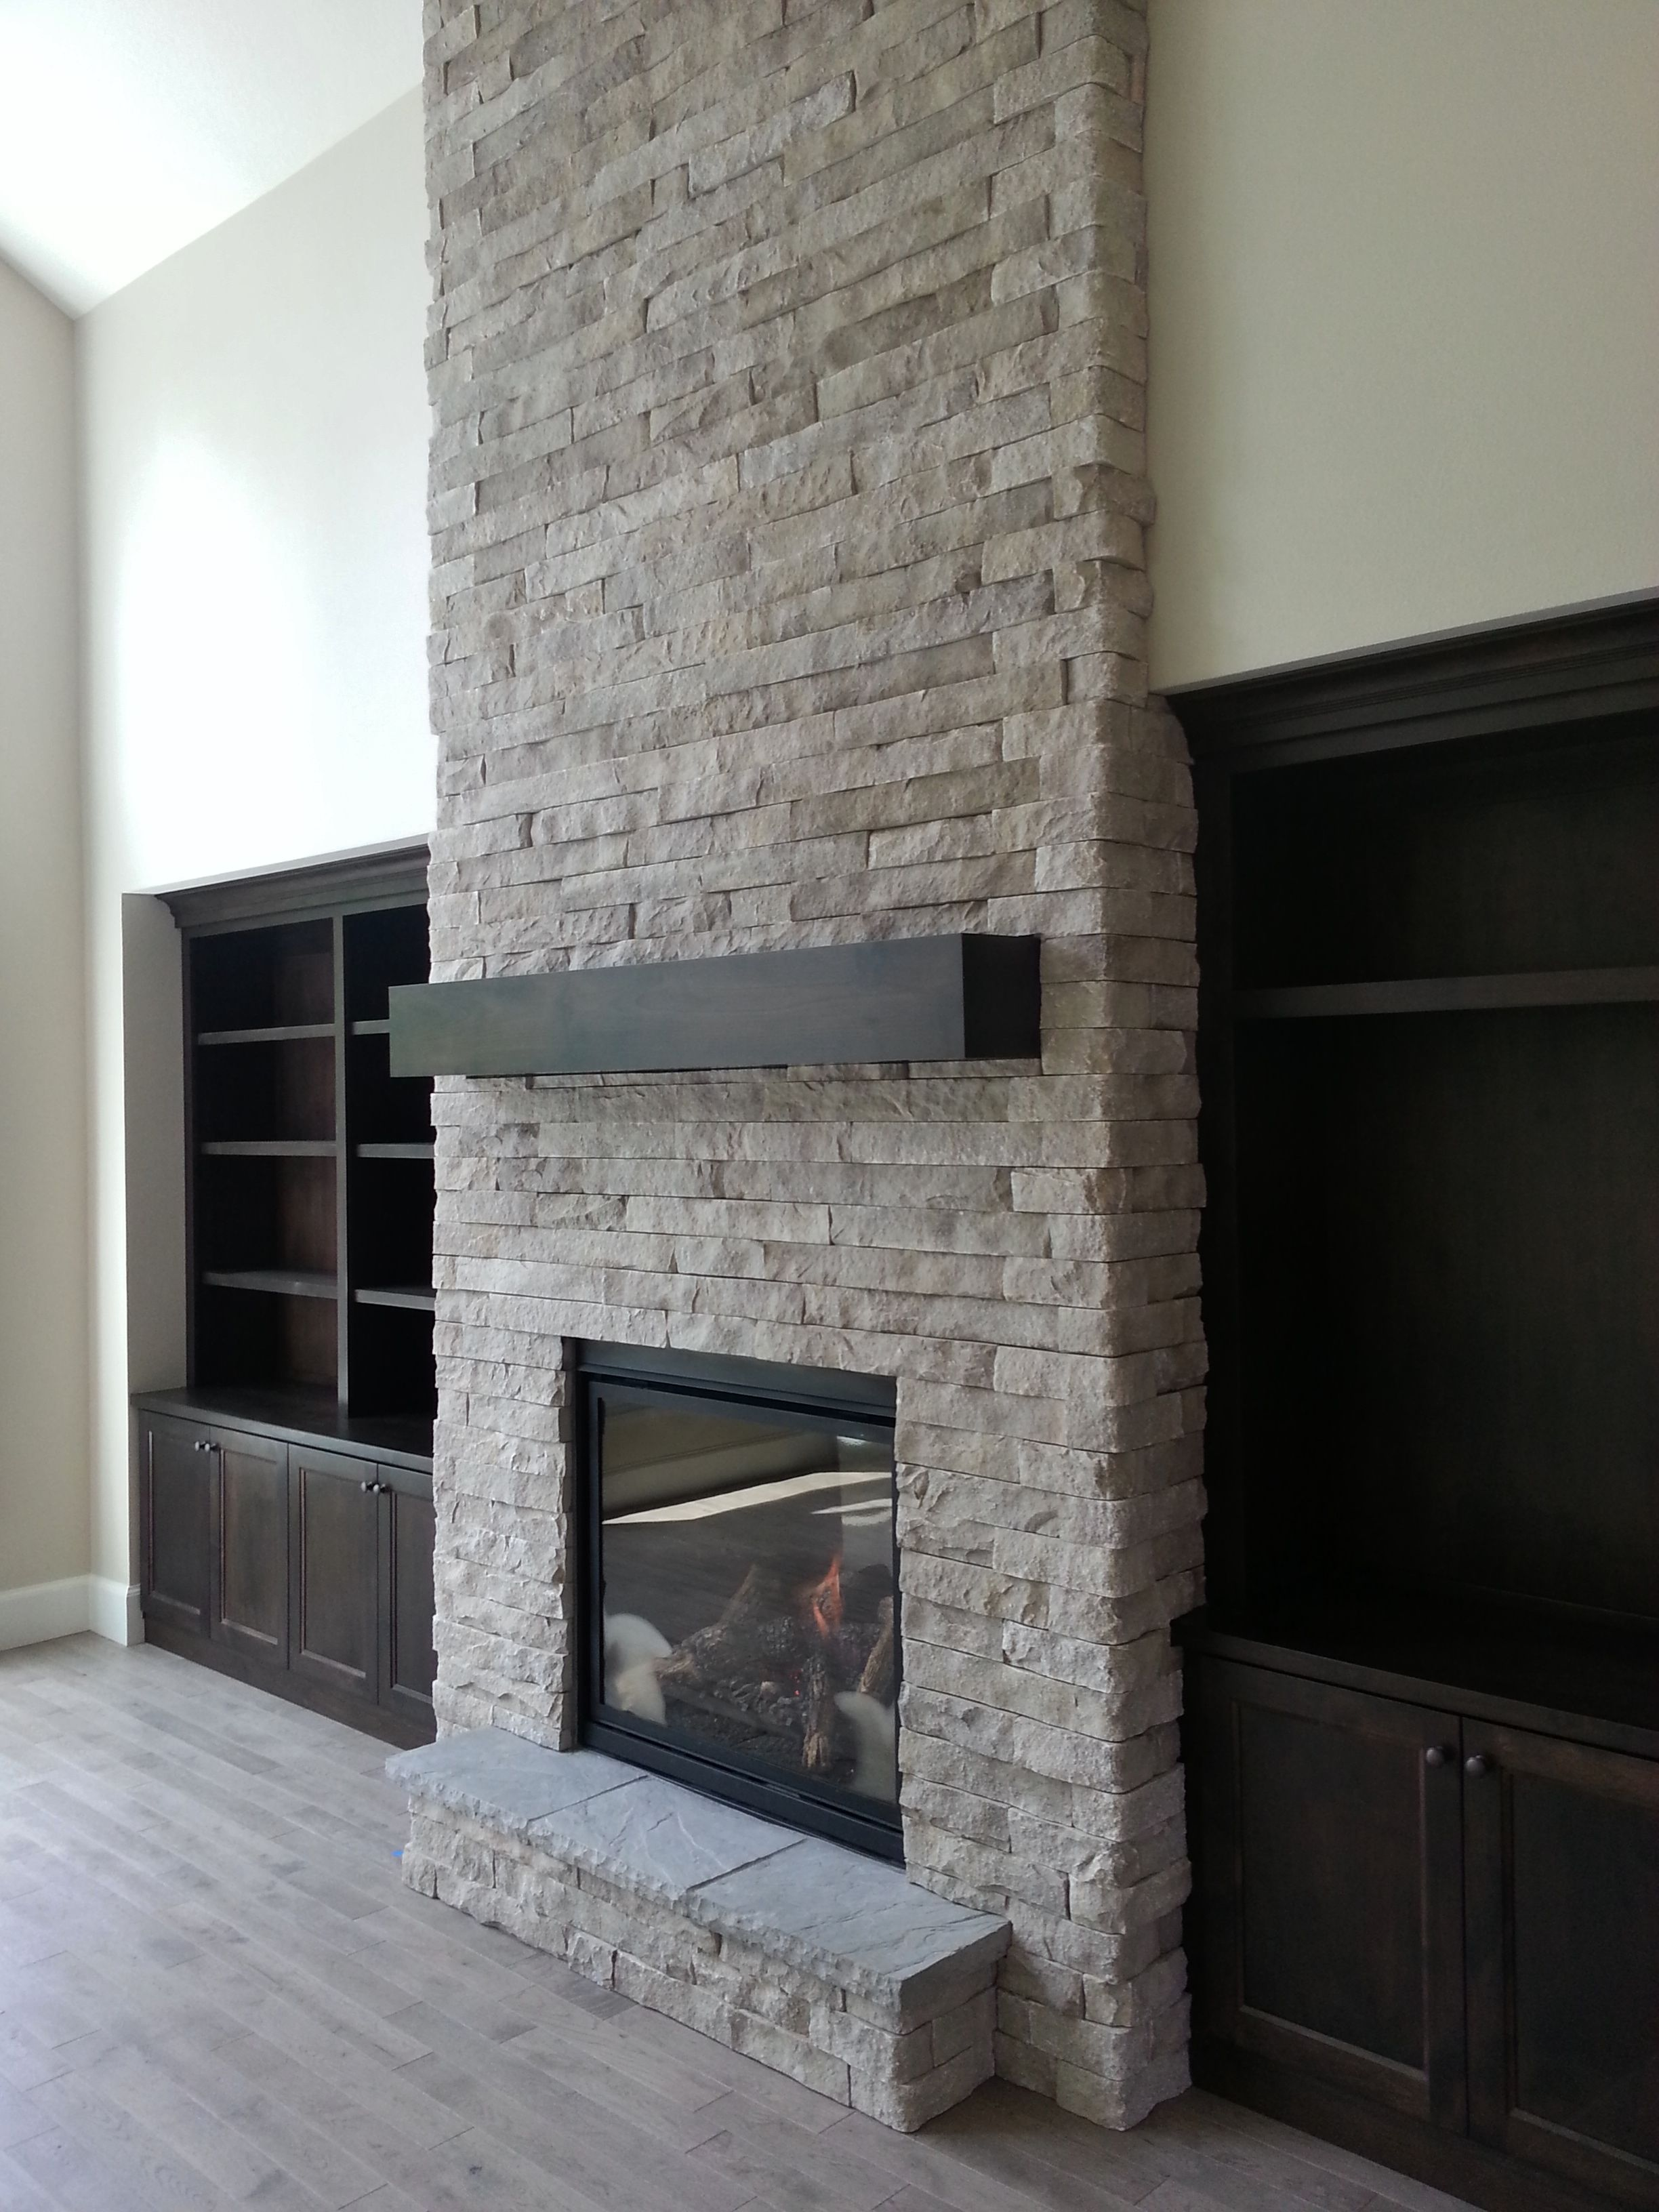 New Construction Indoor Fireplace Stone Fireplace Built